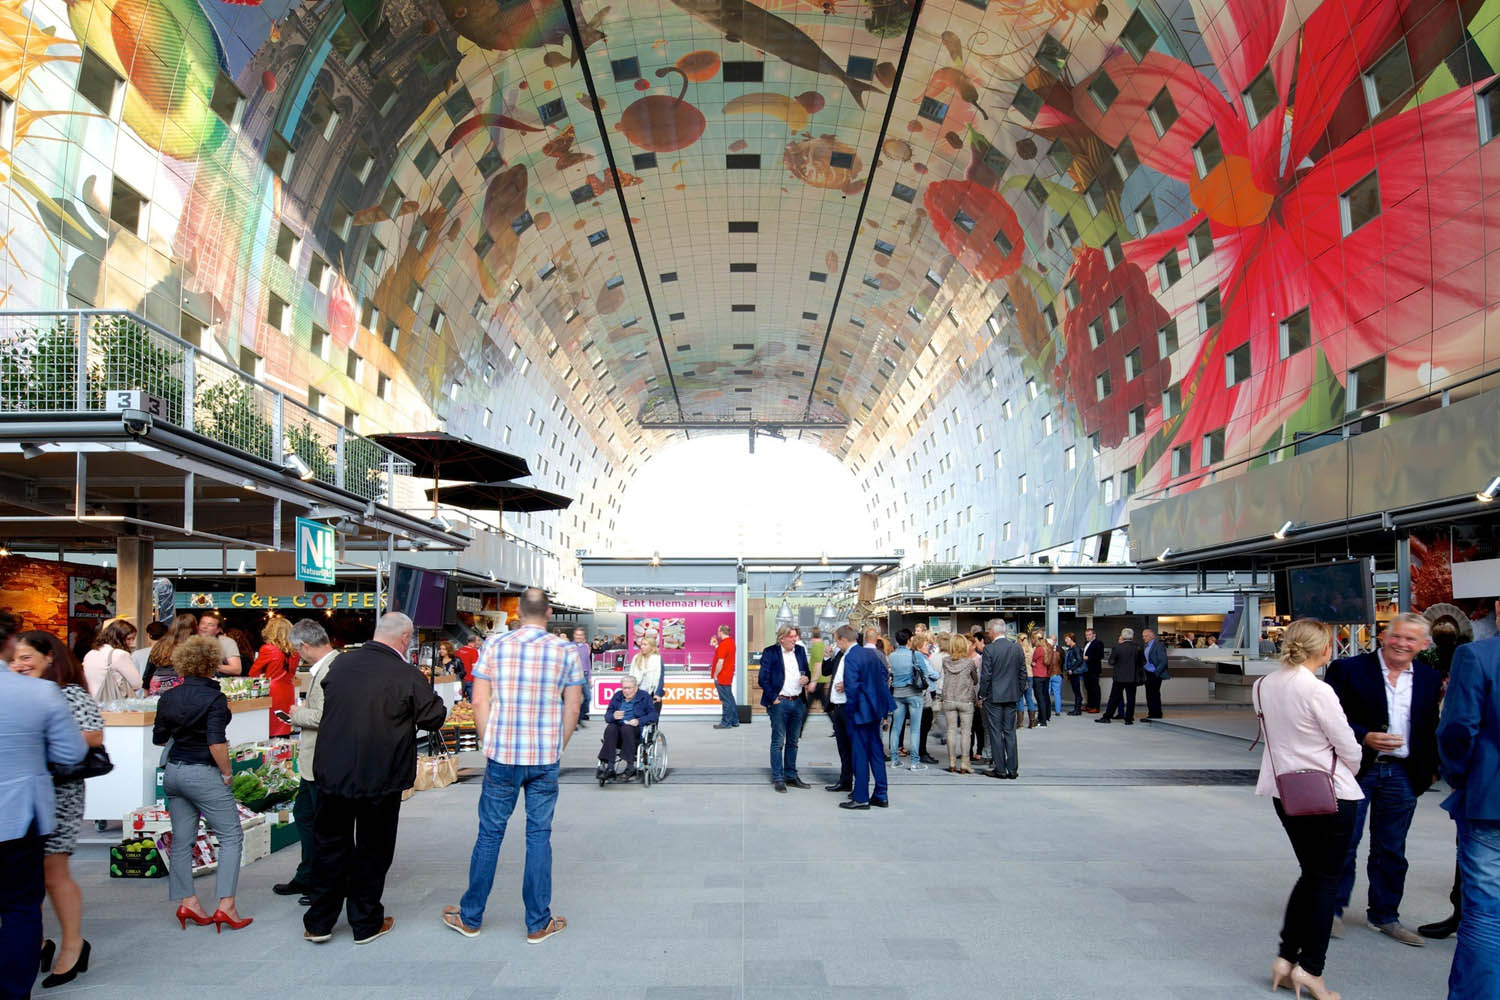 mm_Markthal Rotterdam design by MVRDV_12